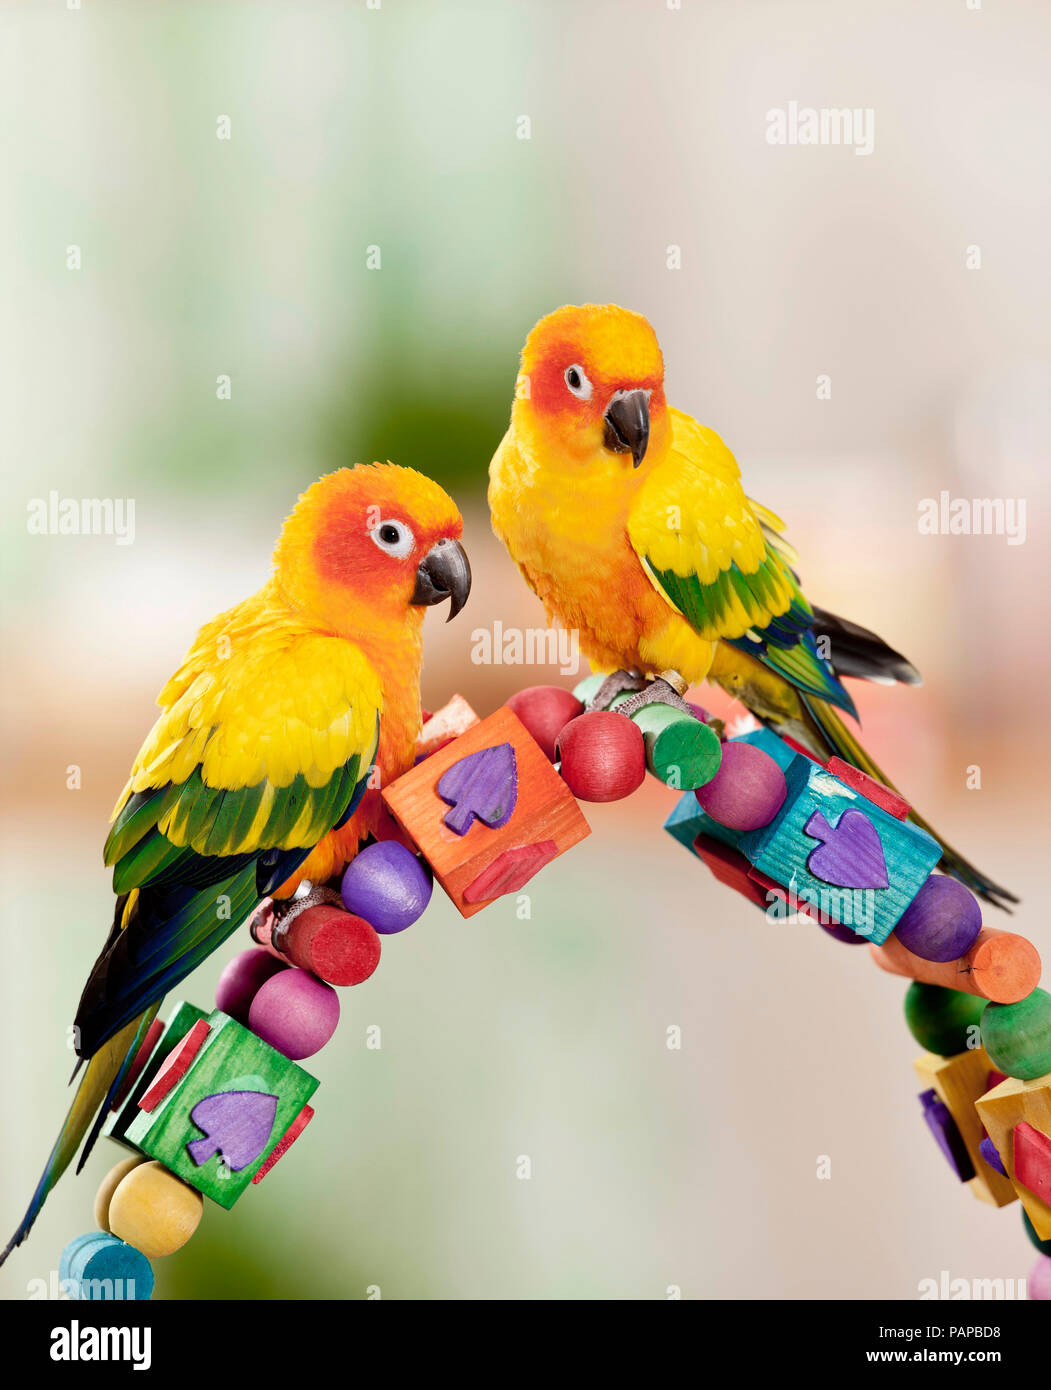 Sun Conure (Aratinga solstitialis). Two adults perched on a multicolored toy, studio picture. - Stock Image